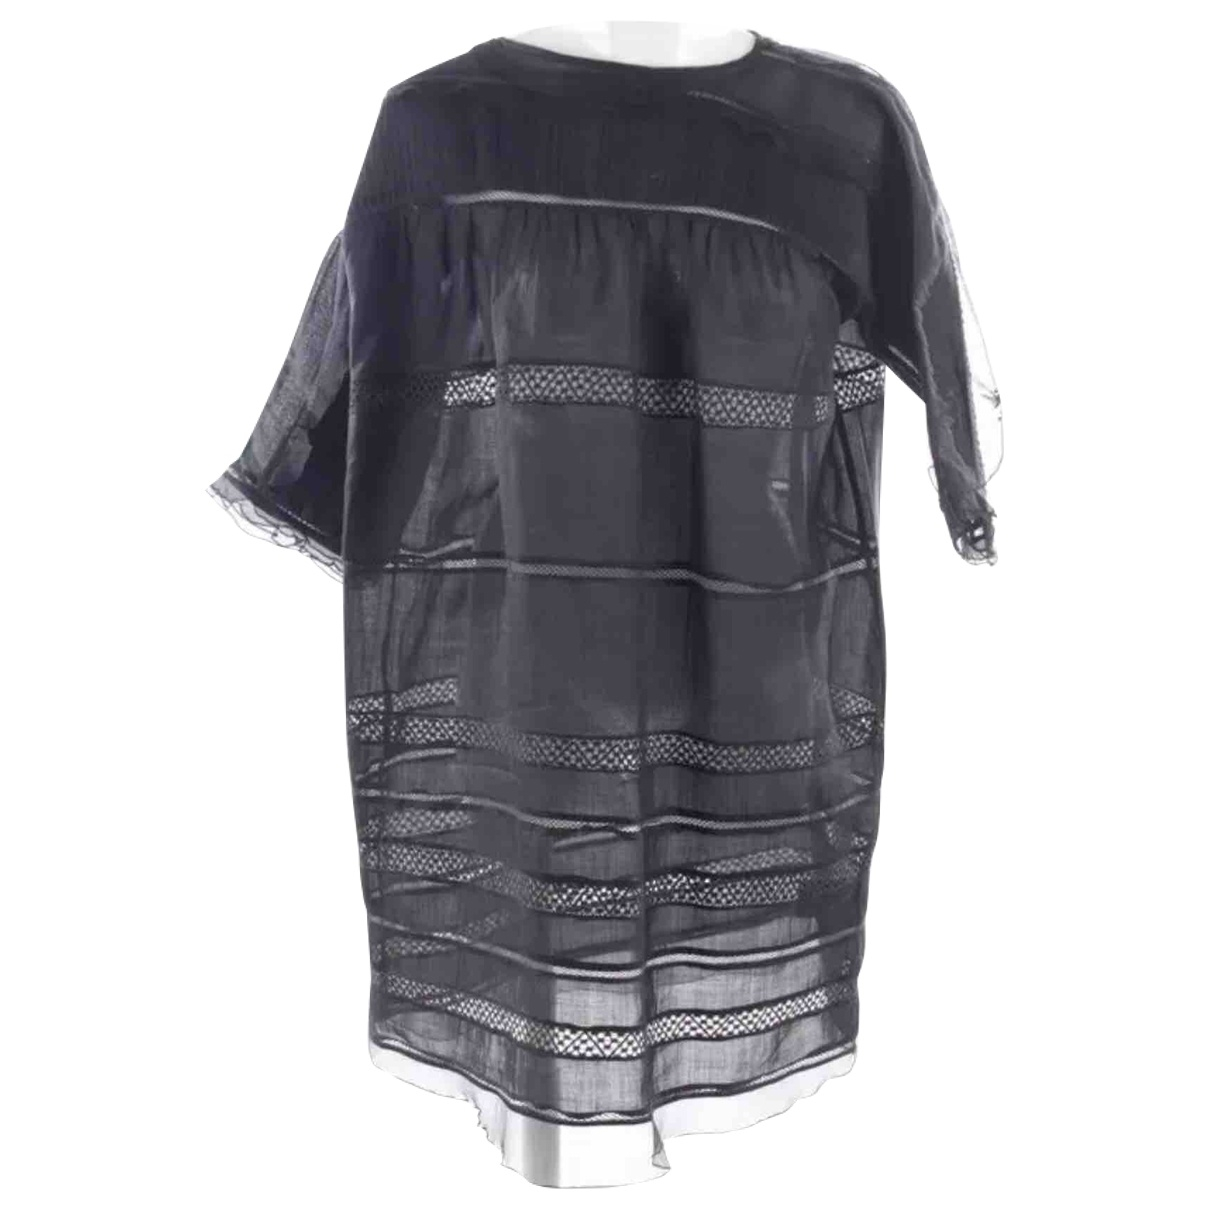 Isabel Marant \N Black Linen dress for Women 38 FR